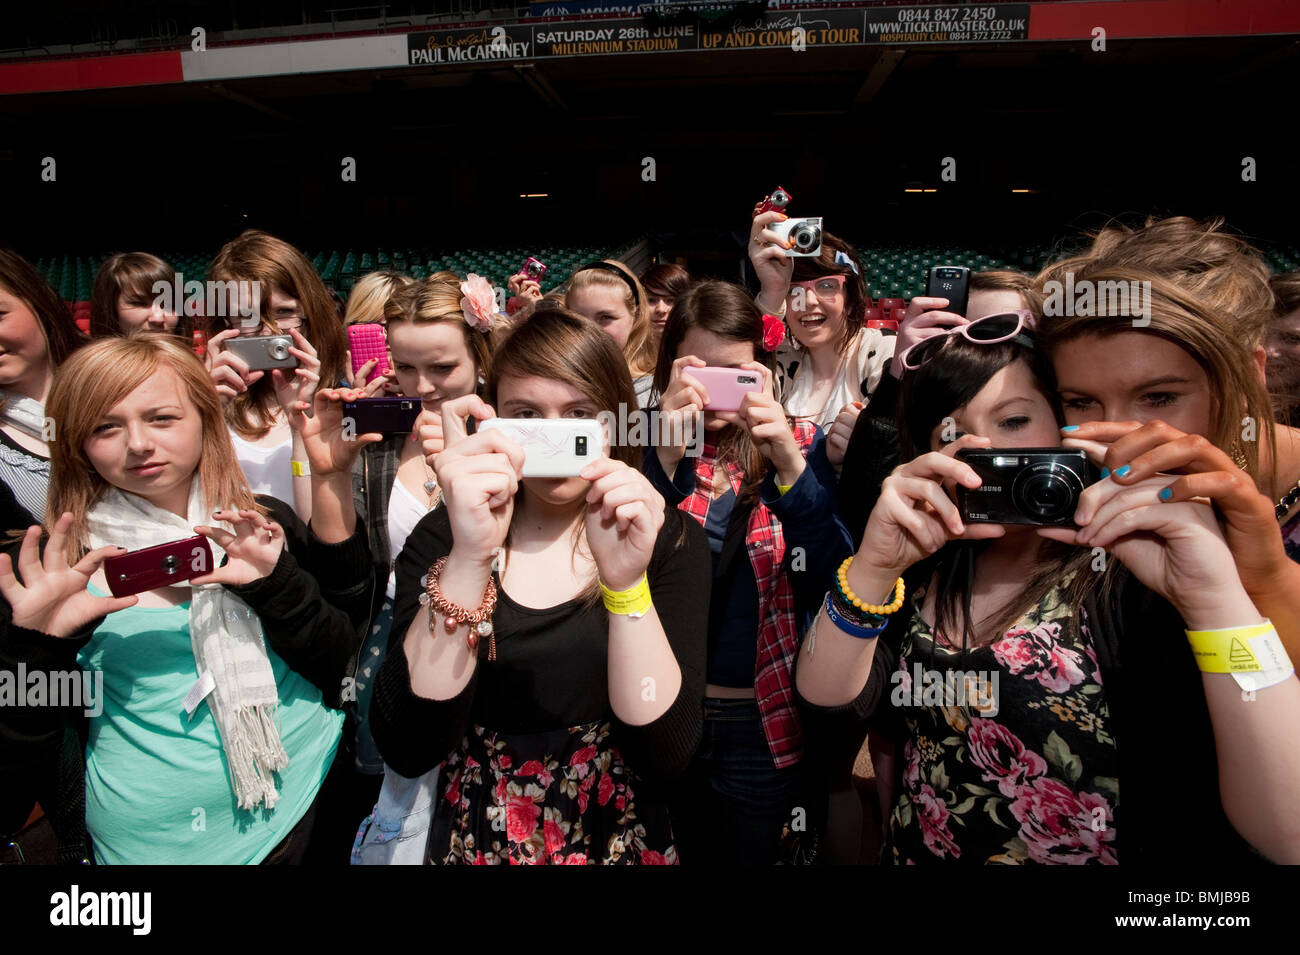 A group of teenage girls taking photos on their phones visiting the Millennium Stadium in Cardiff, the capital city - Stock Image